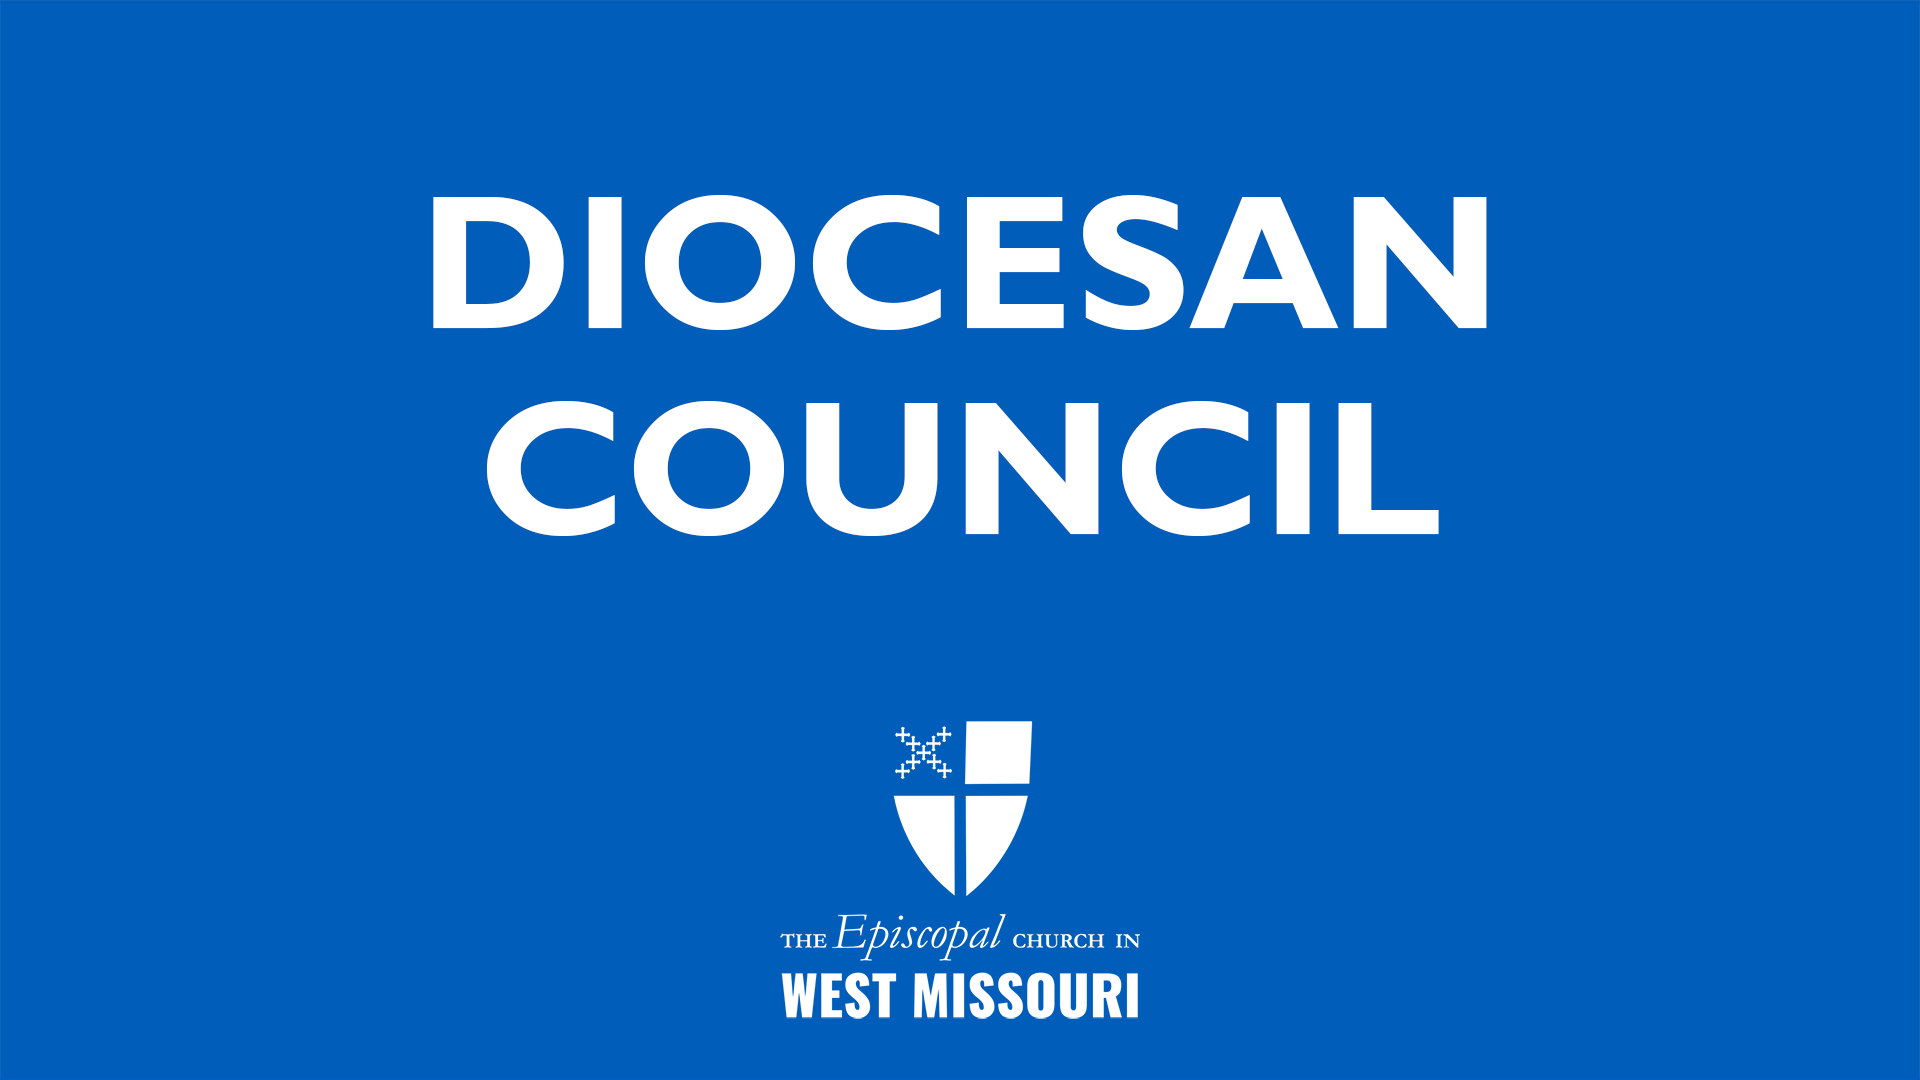 Approved Diocesan Council minutes for October 2020, December 2020, and April 2021 available to read online